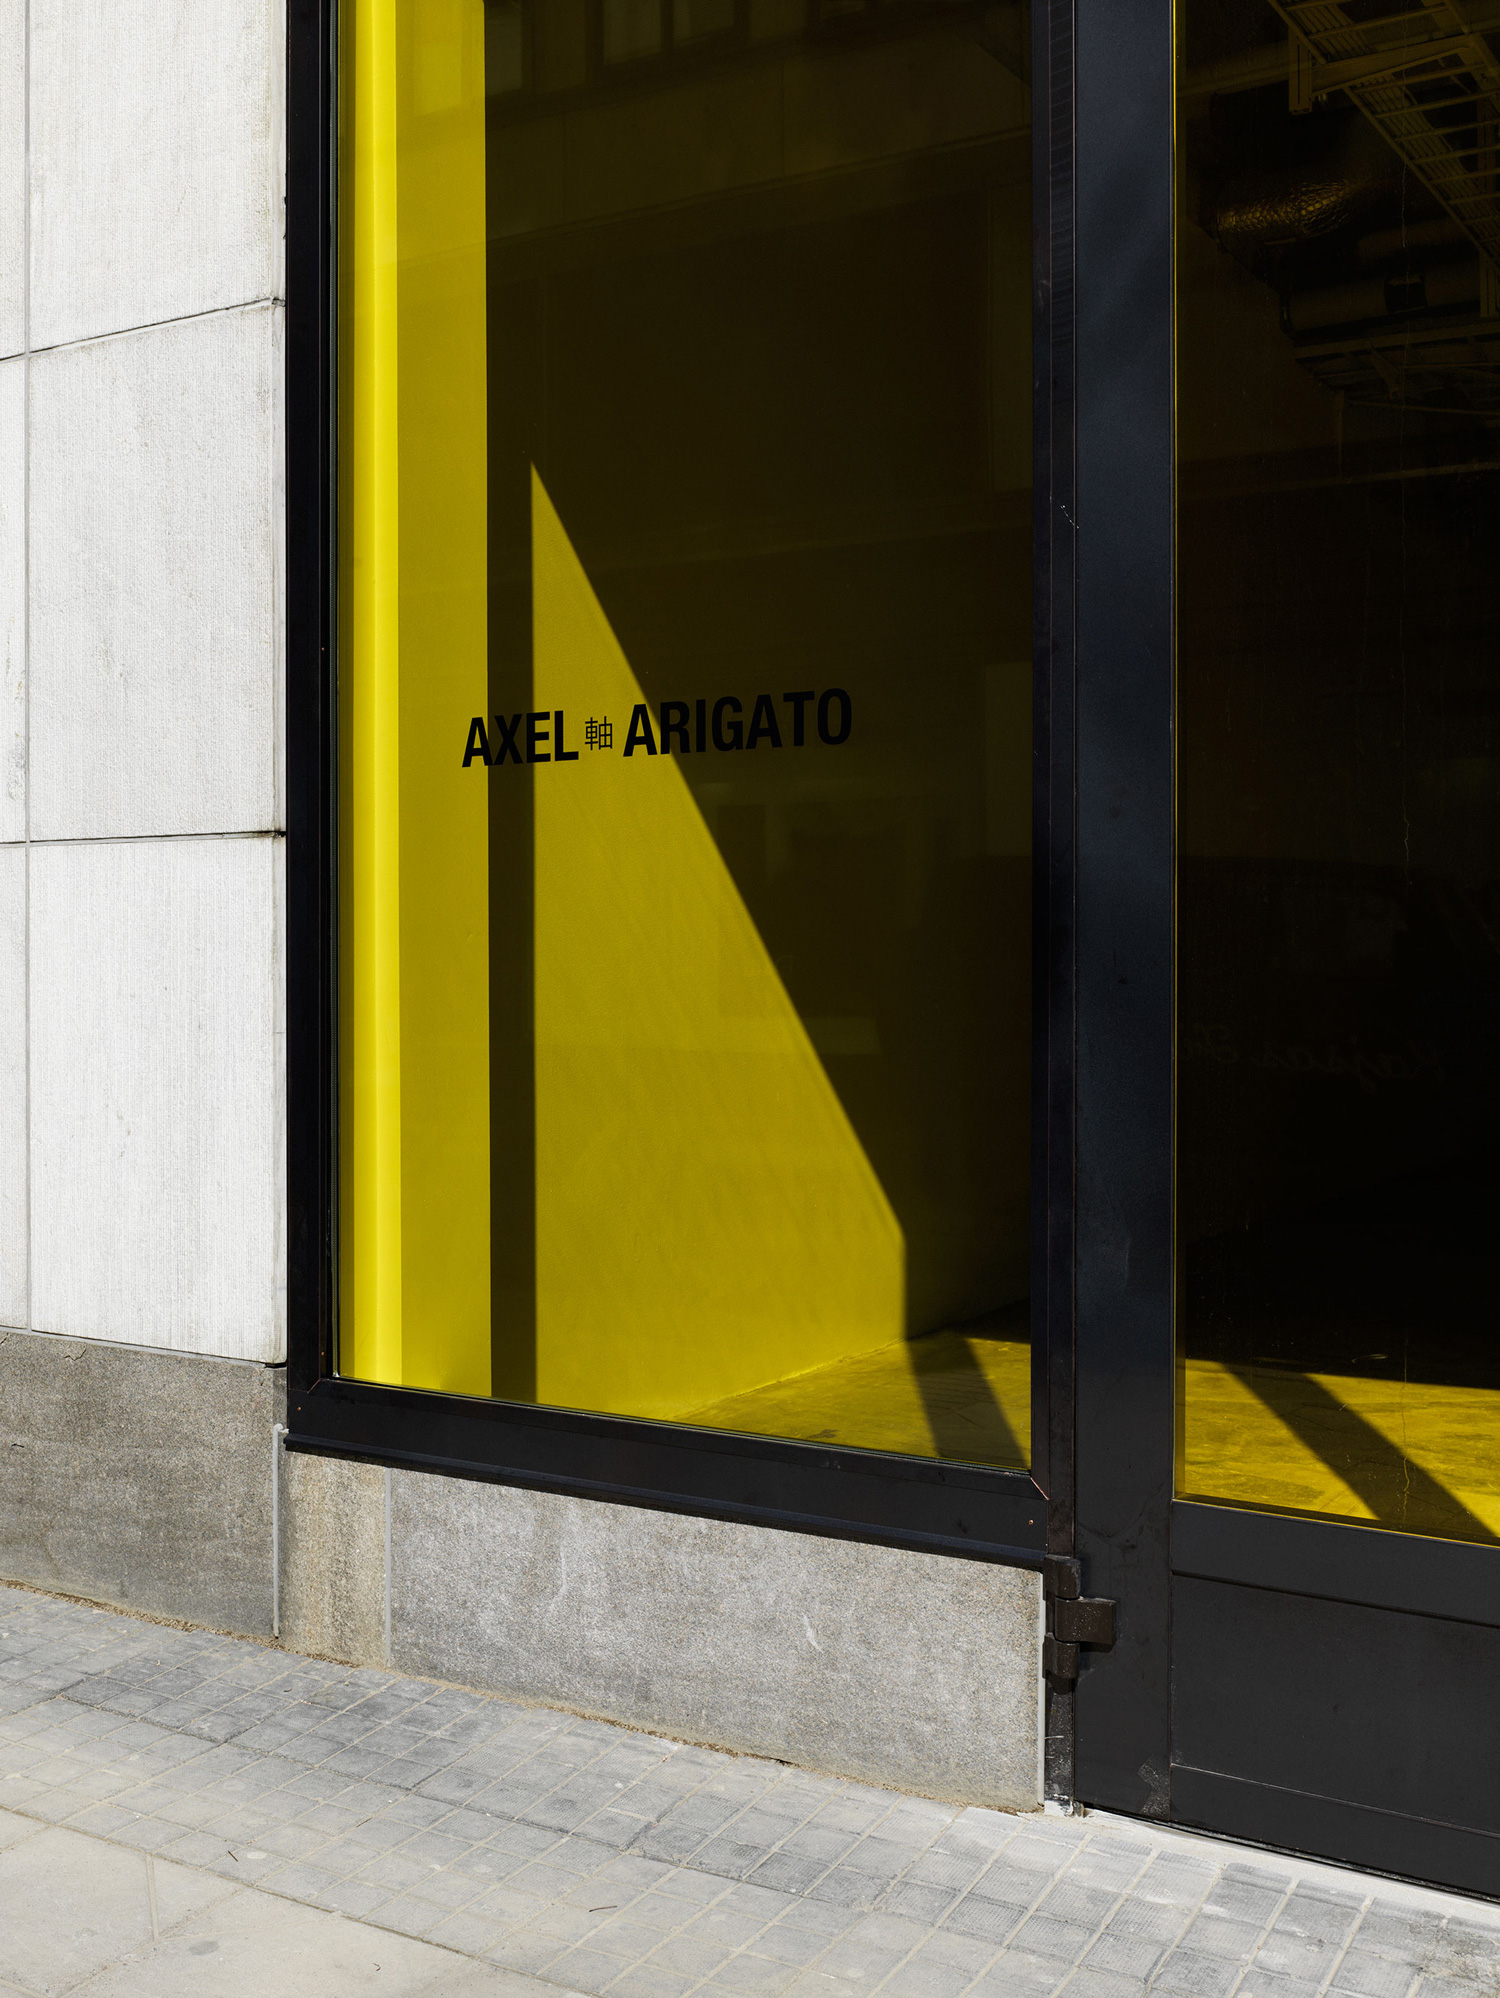 Axel Arigato Gallery in Stockholm by Christian Halleröd.